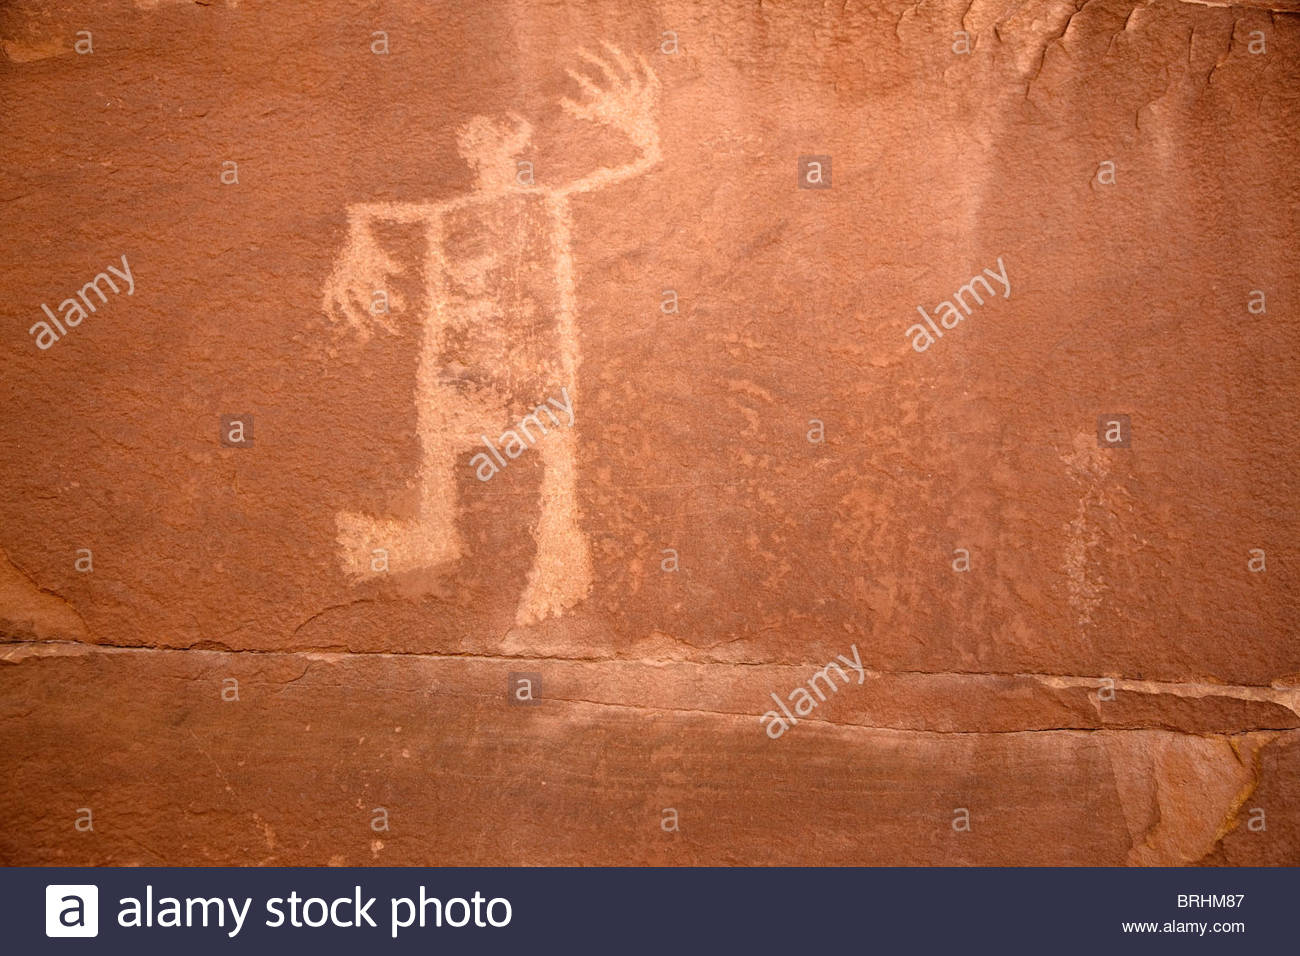 Wolfman Site: a motif 18' tall with a rectangular body and big feet. - Stock Image